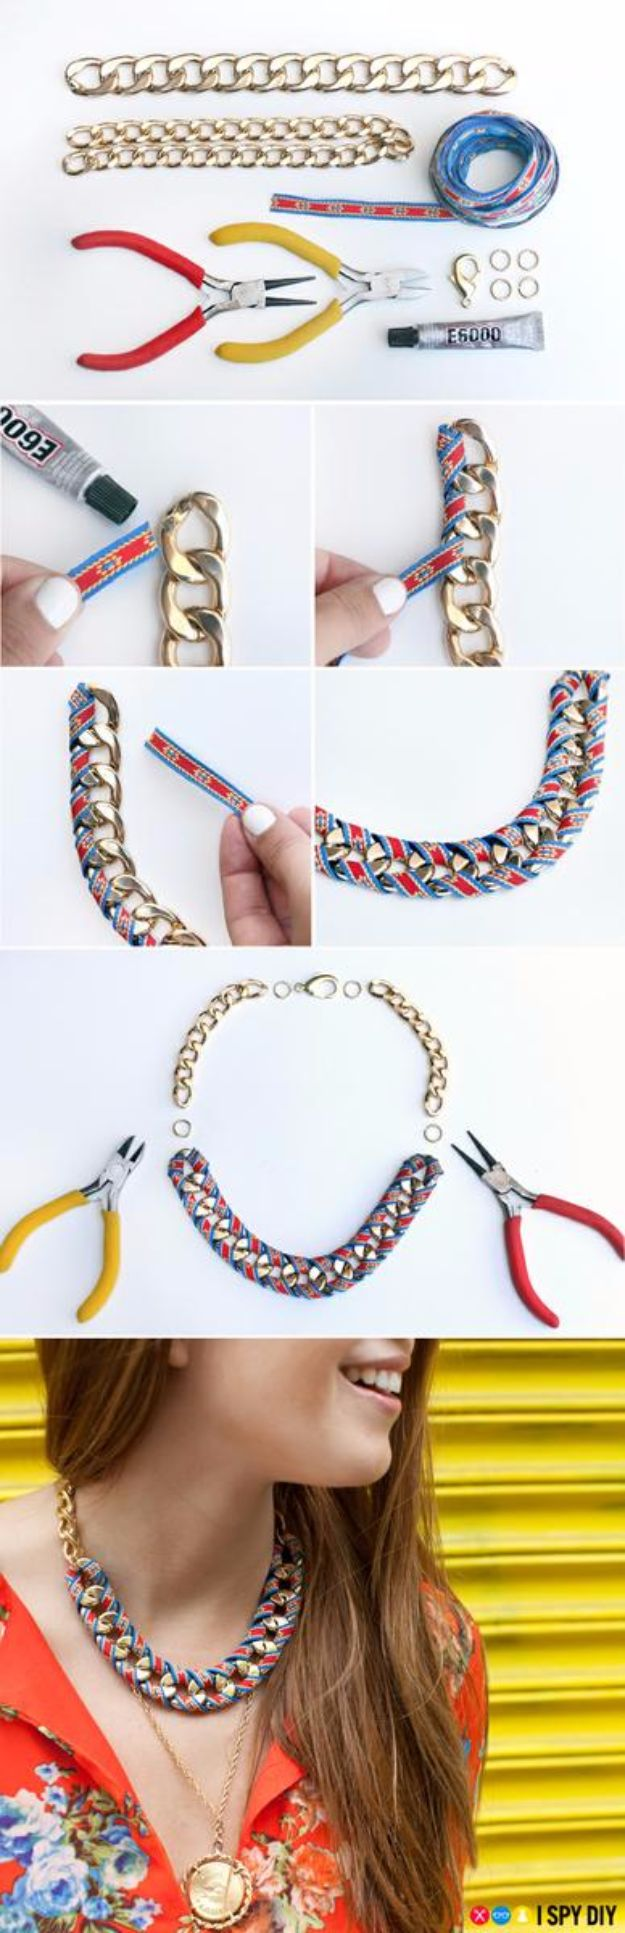 DIY Necklace Ideas - Ribbon Wrap Chain Necklace - Easy Handmade Necklaces with Step by Step Tutorials - Pendant, Beads, Statement, Choker, Layered Boho, Chain and Simple Looks - Creative Jewlery Making Ideas for Women and Teens, Girls - Crafts and Cool Fashion Ideas for Women, Teens and Teenagers #necklaces #diyjewelry #jewelrymaking #teencrafts